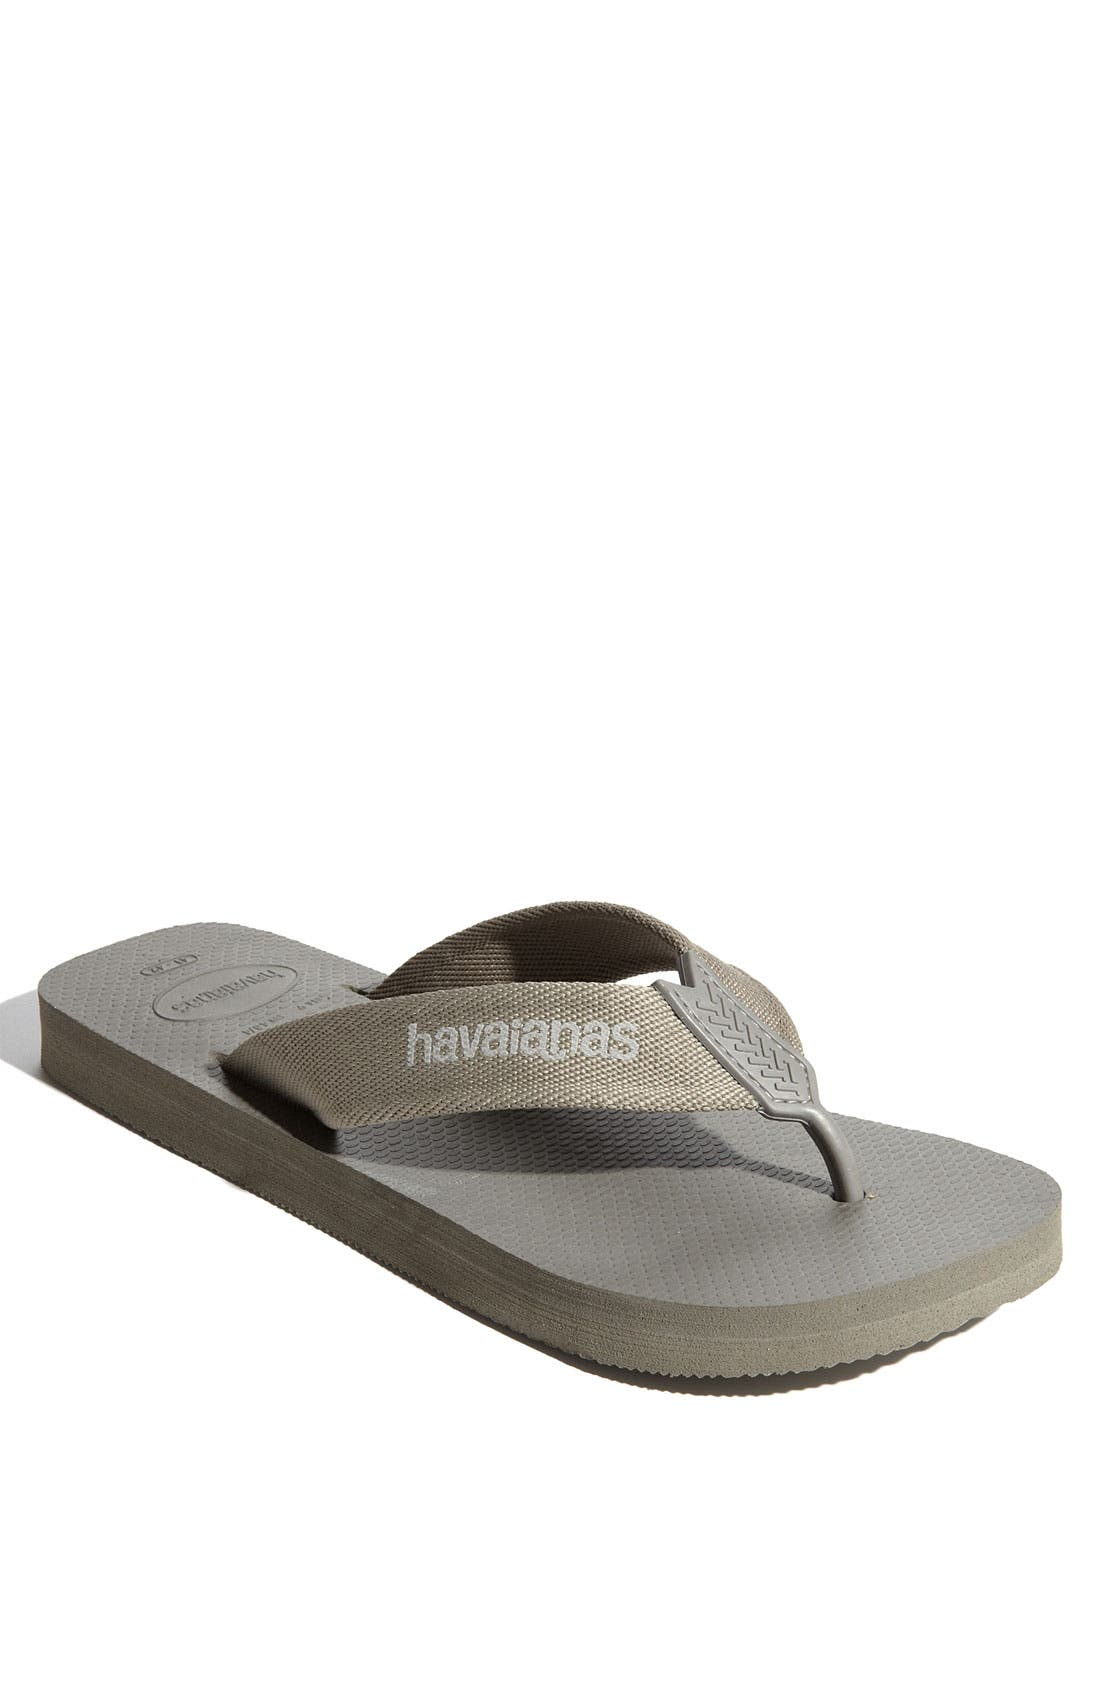 Alternate Image 1 Selected - Havaianas 'Urban' Flip Flop (Men)